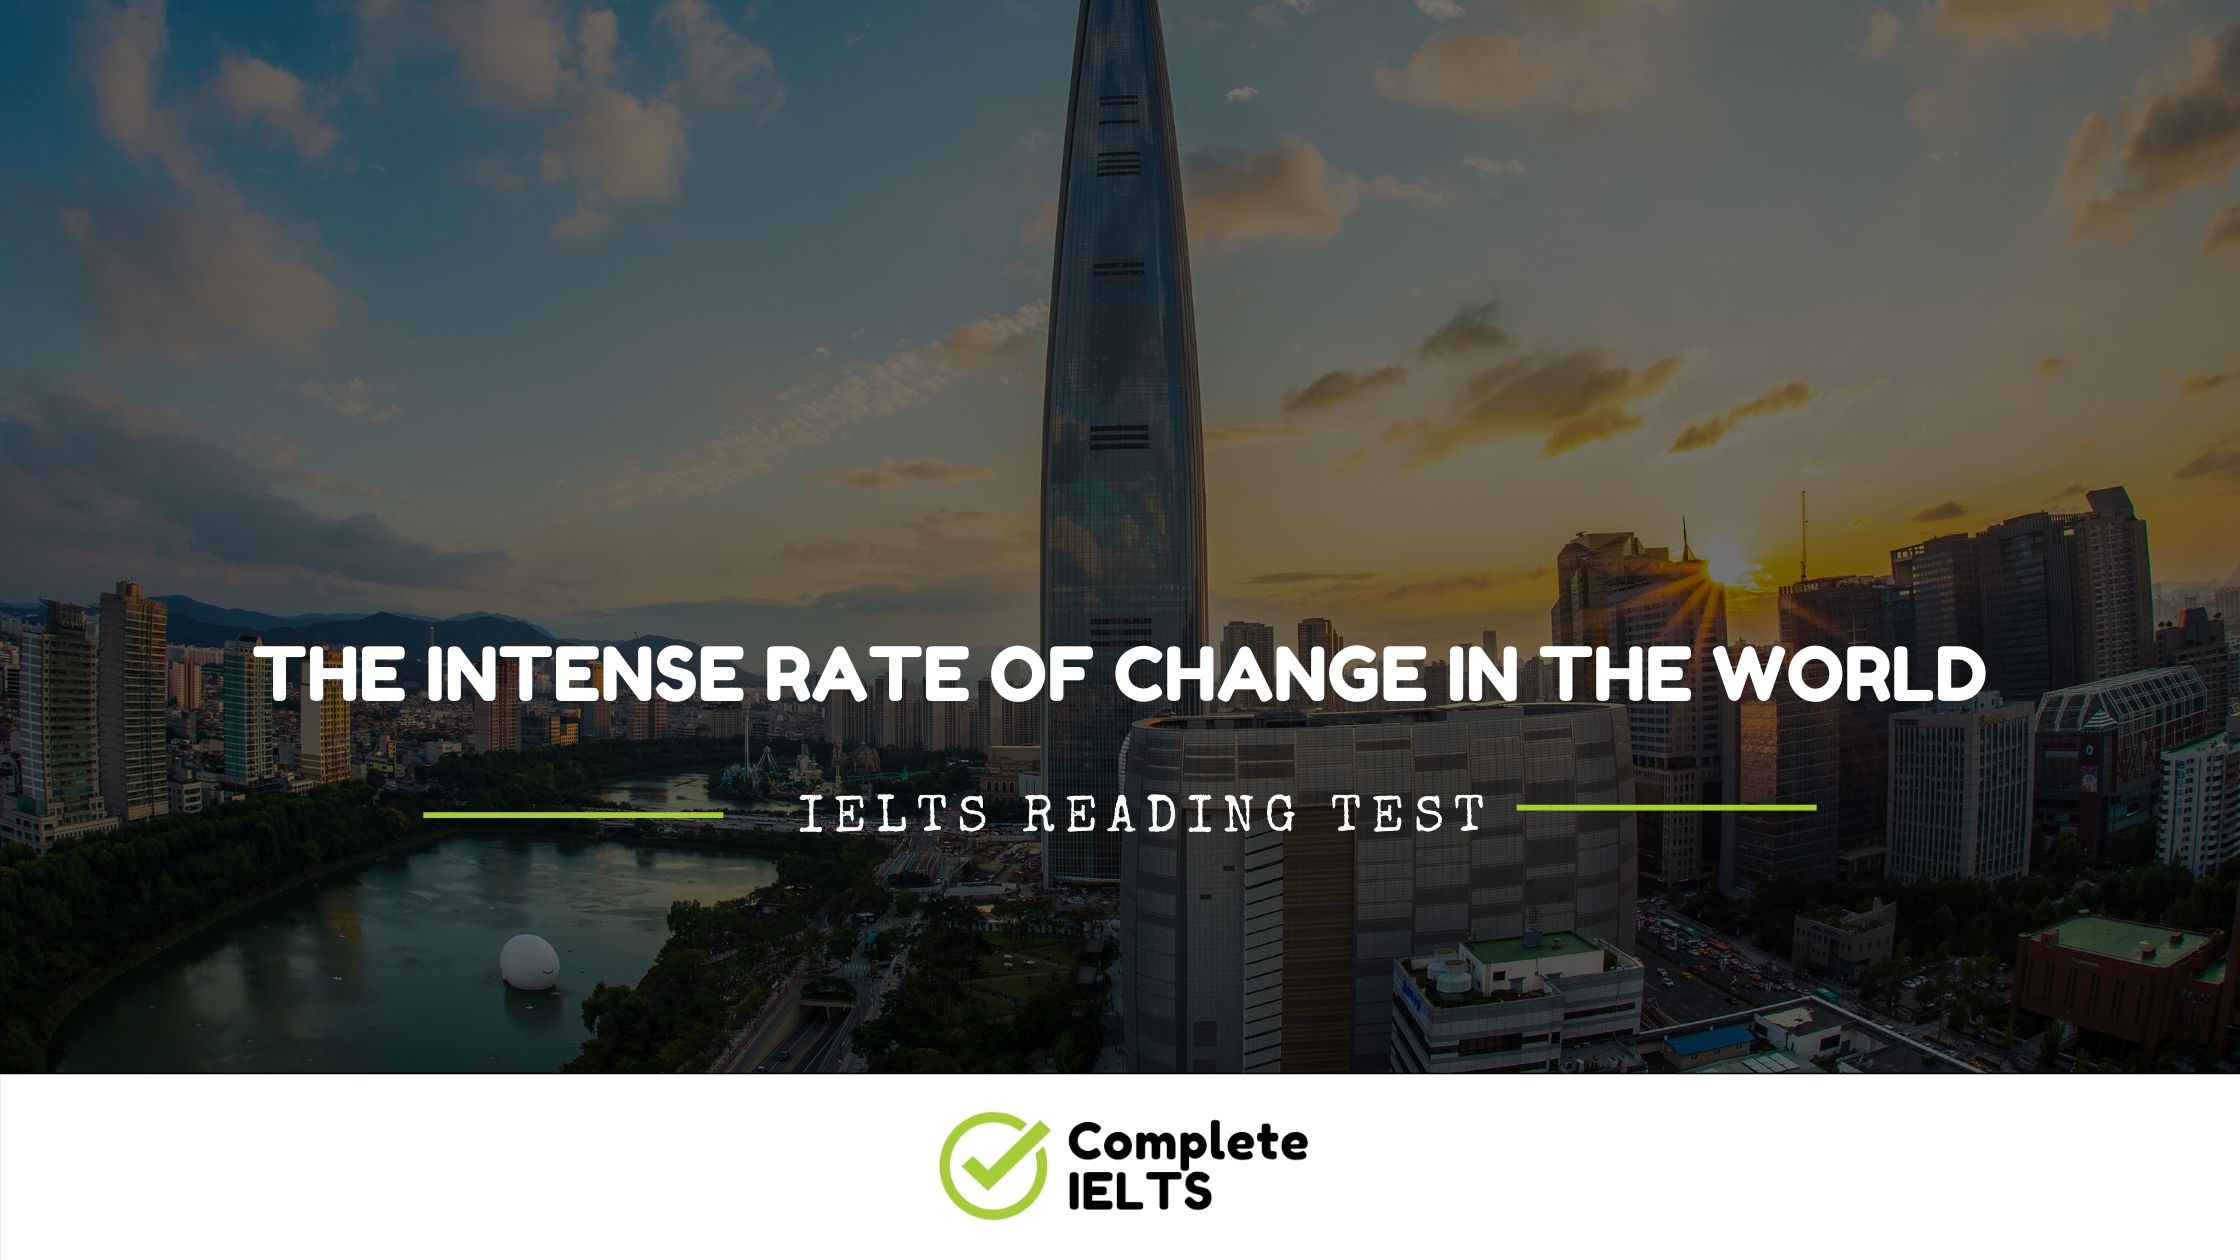 The intense rate of change in the world | IELTS Academic Reading Sample Question